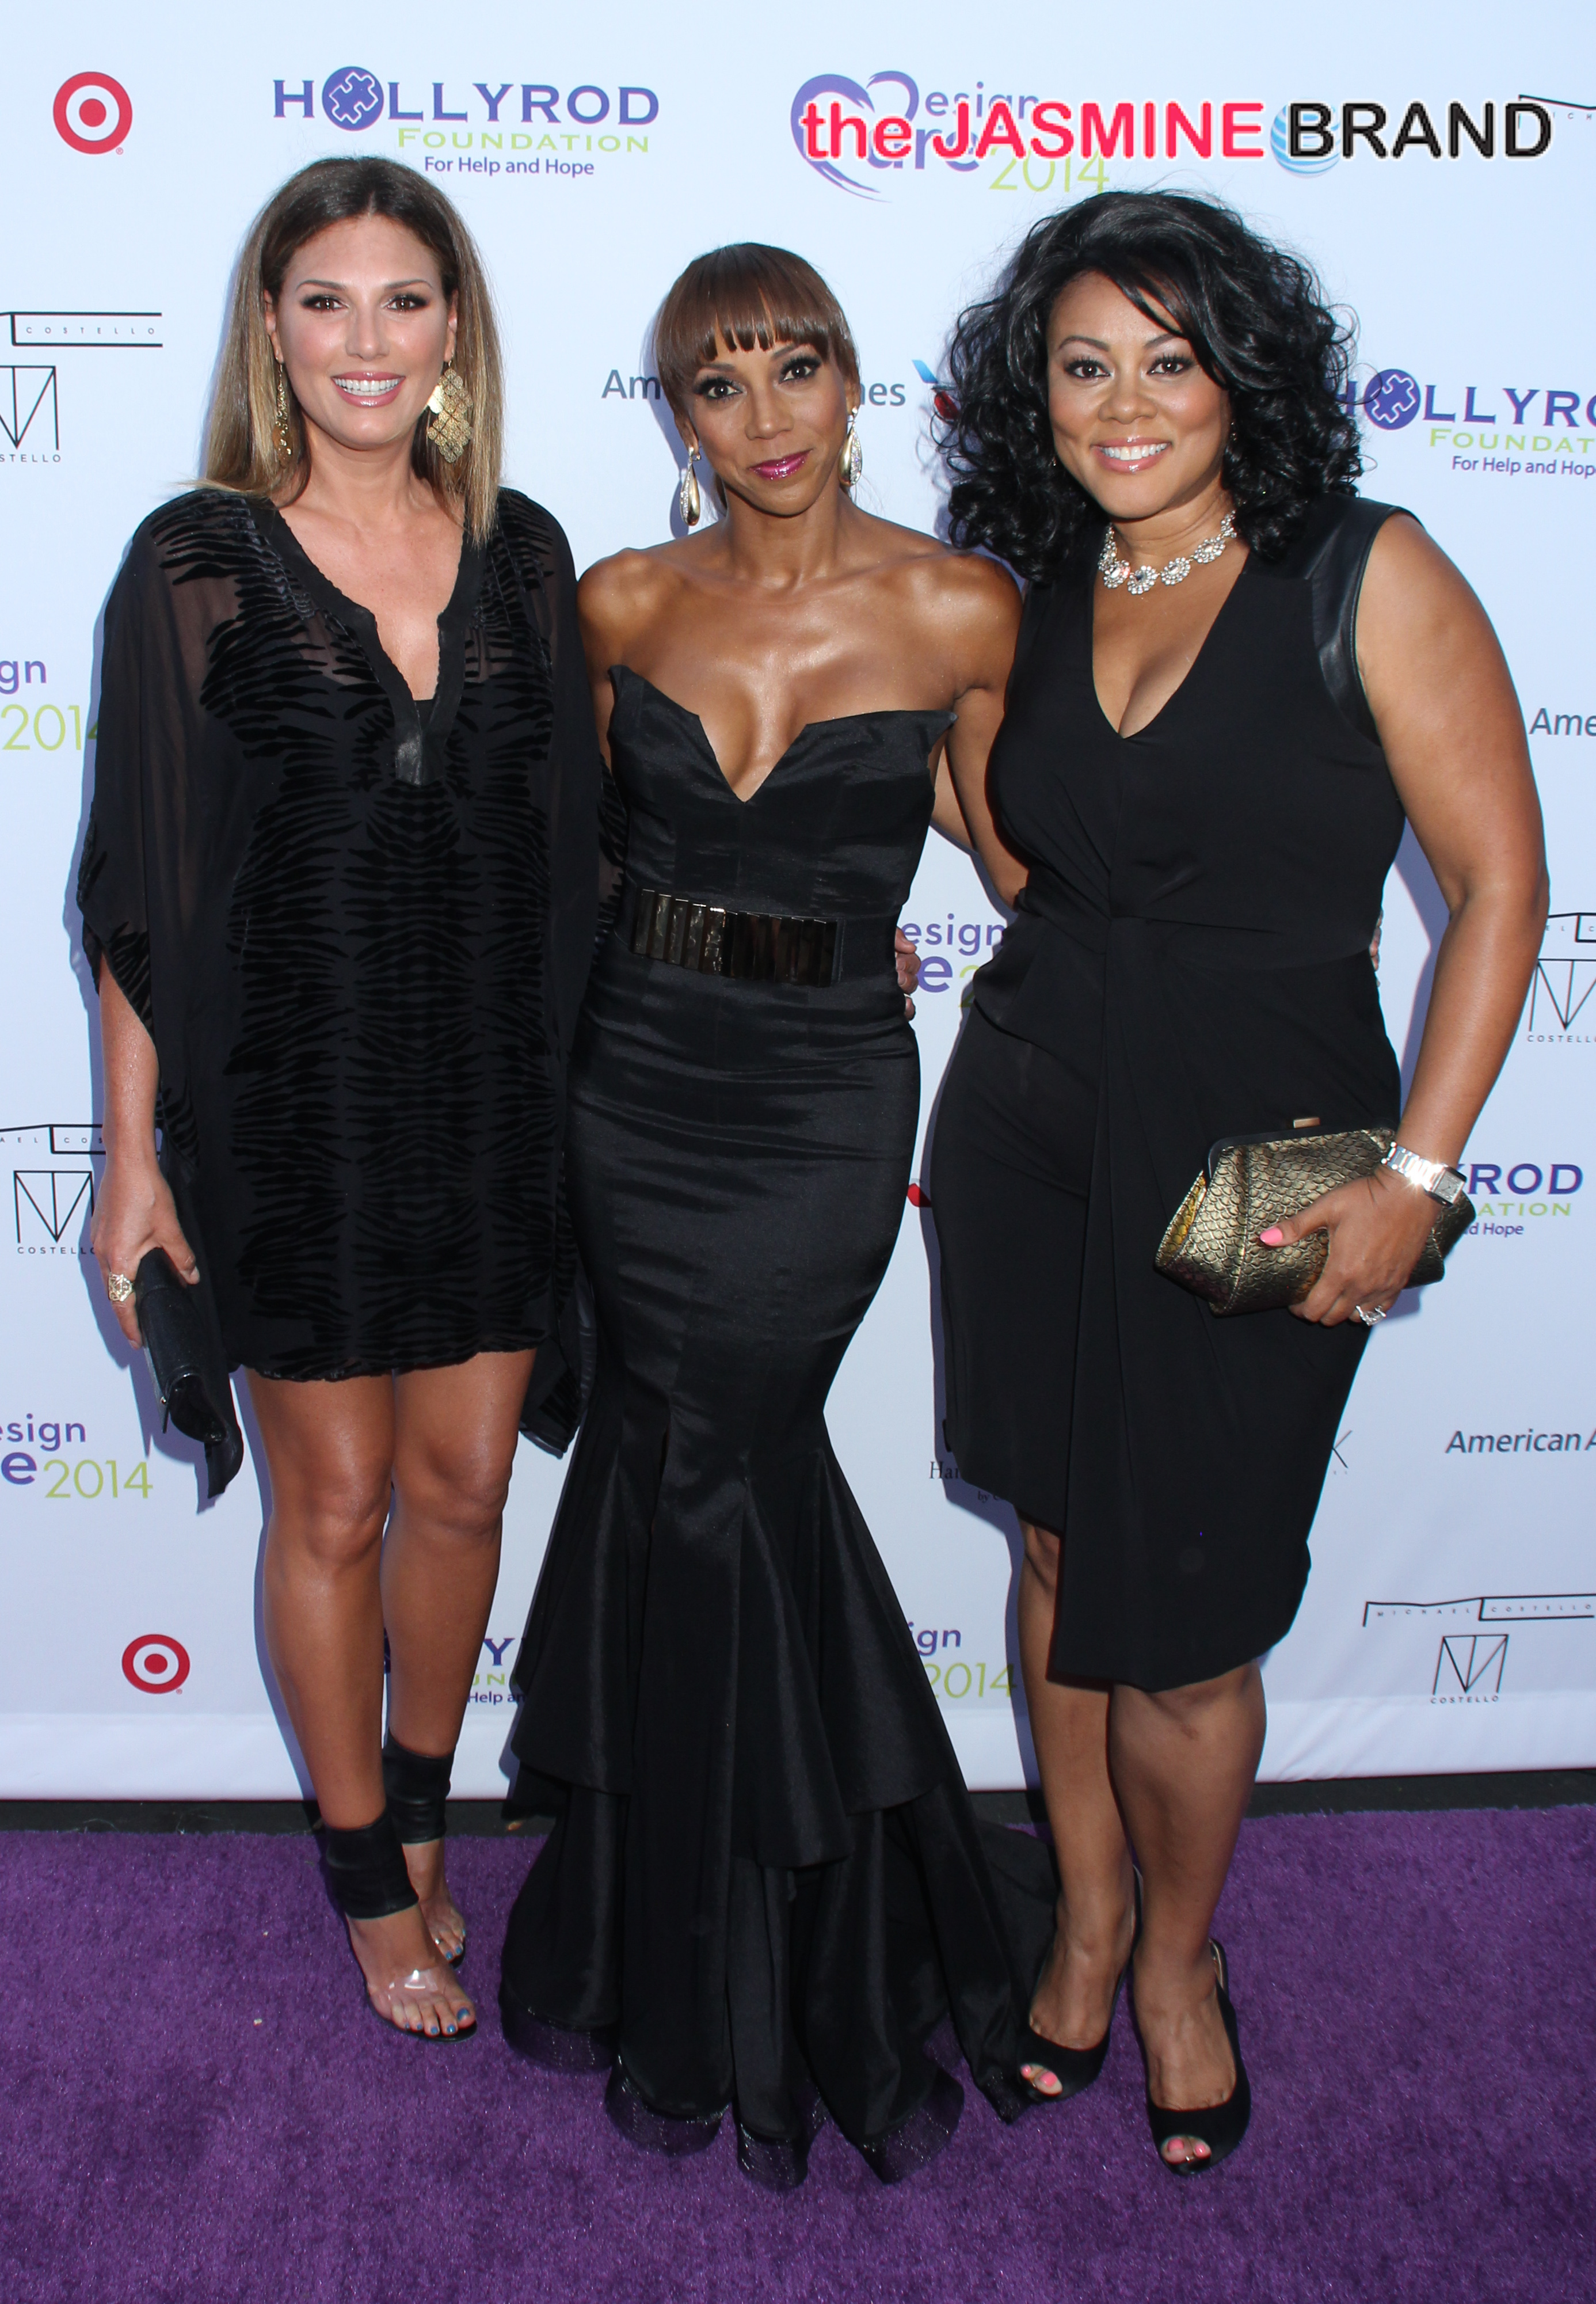 Holly Robinson Peete arrives in a stunning black dress for the 16th Annual Designcare to benefit the Hollyrod Foundation at The Lot Studios in Hollywood, CA